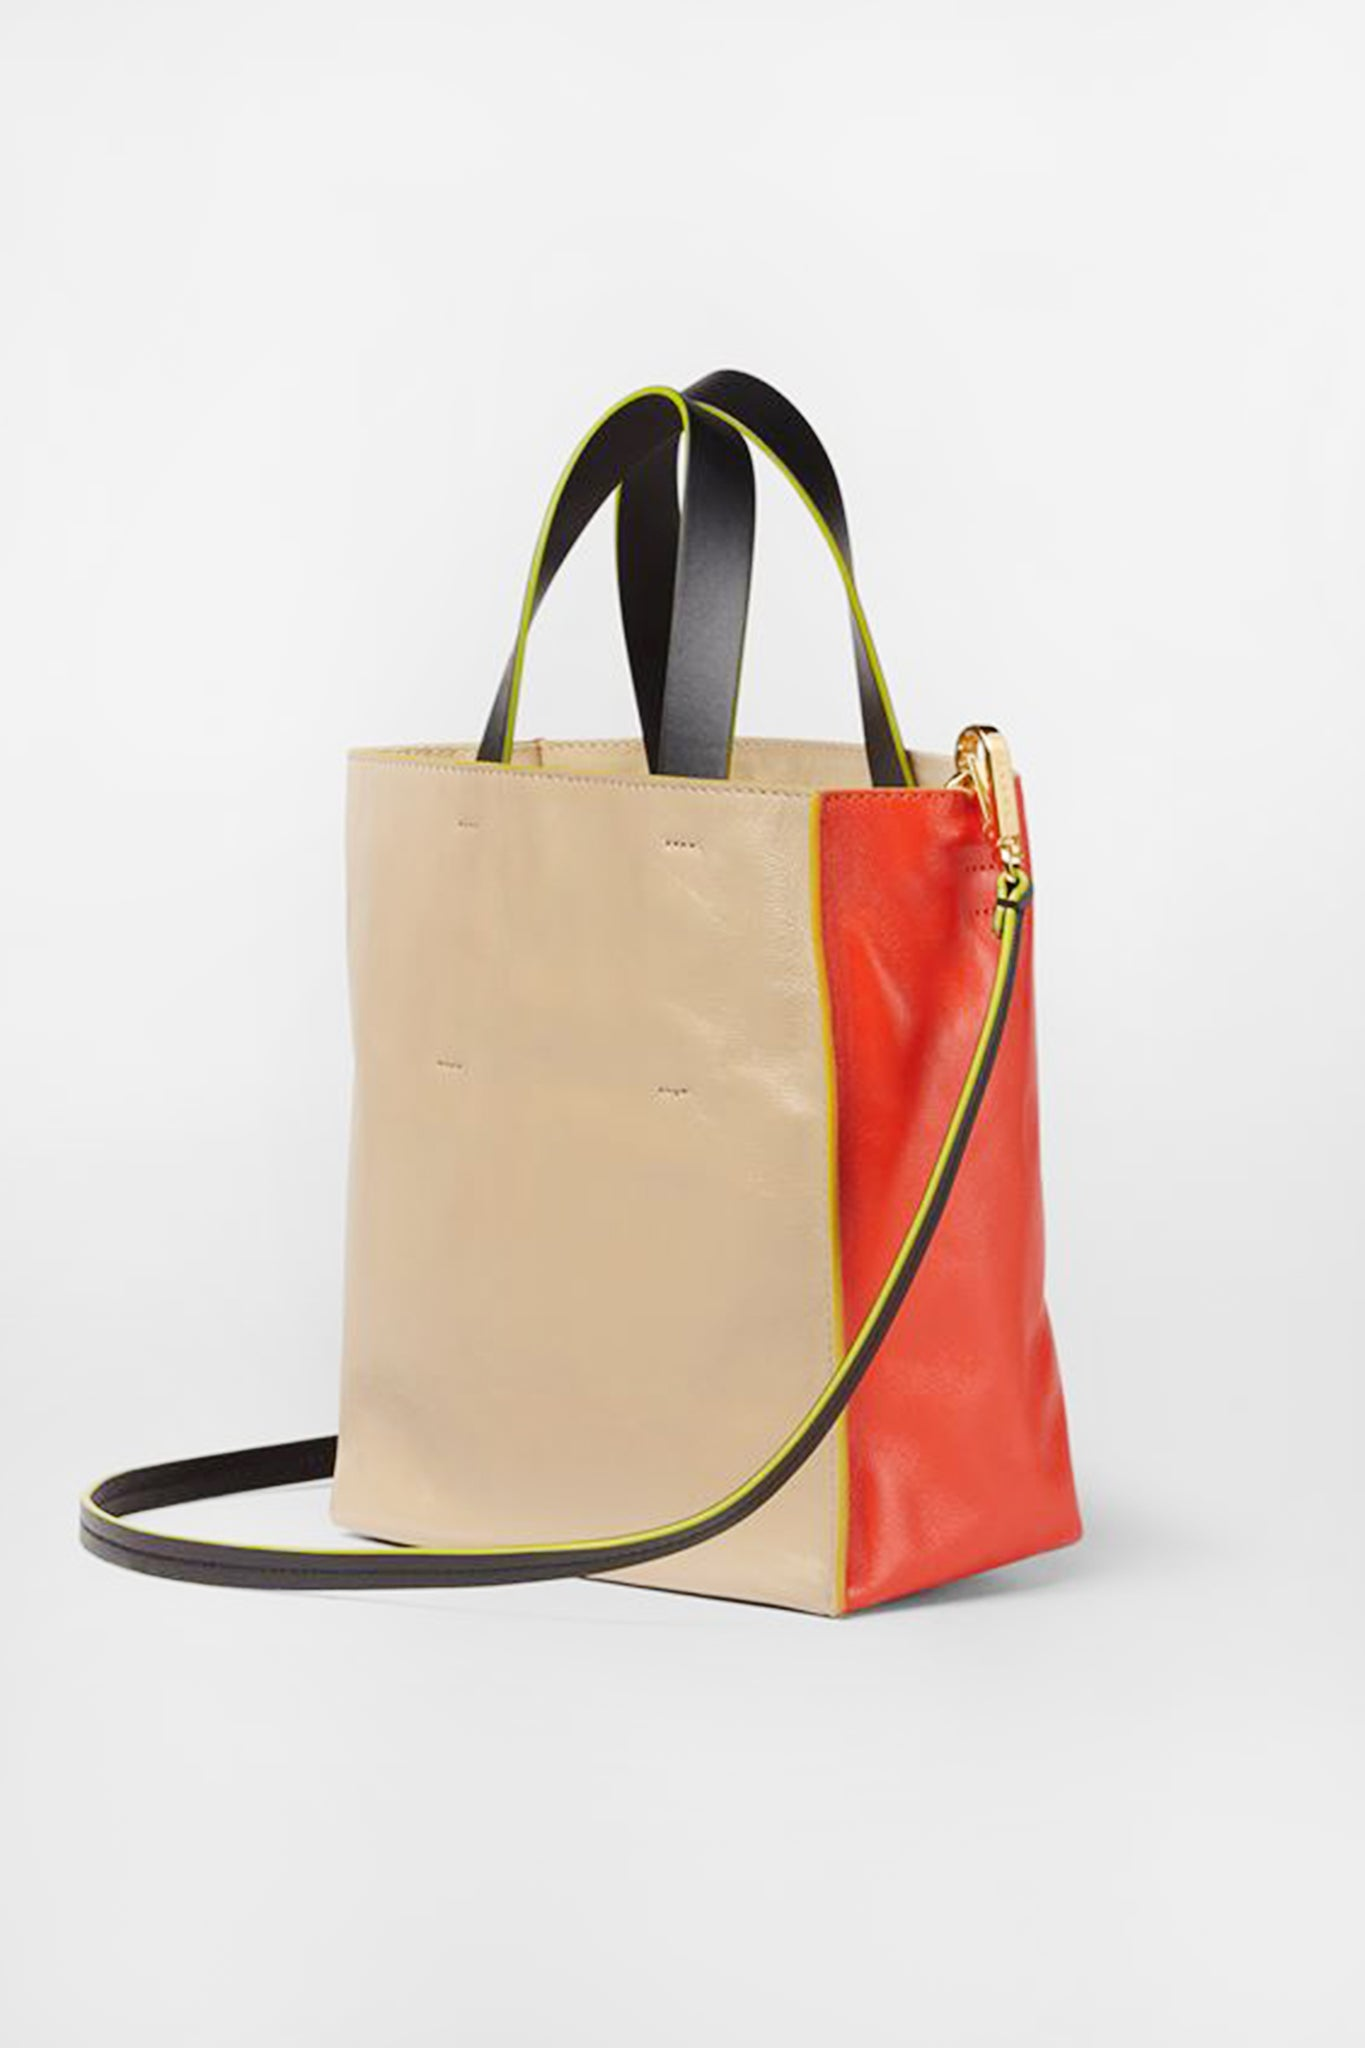 MARNI - small museo soft bag, beige and orange